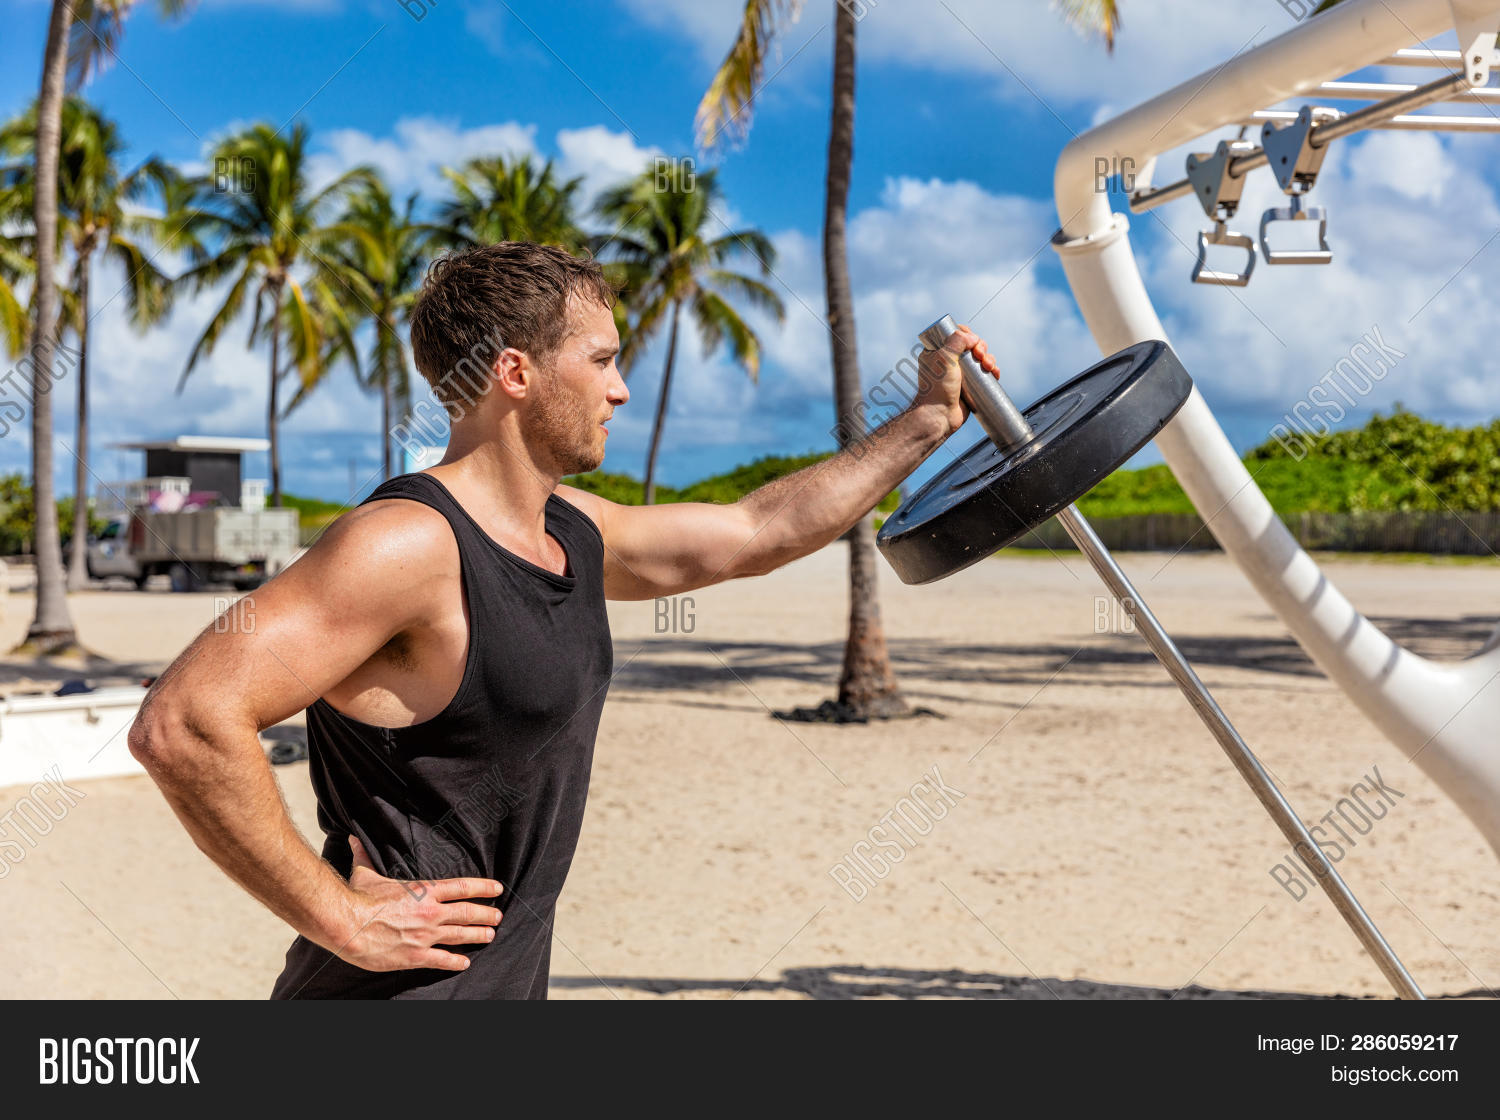 Gym Fitness Image Photo Free Trial